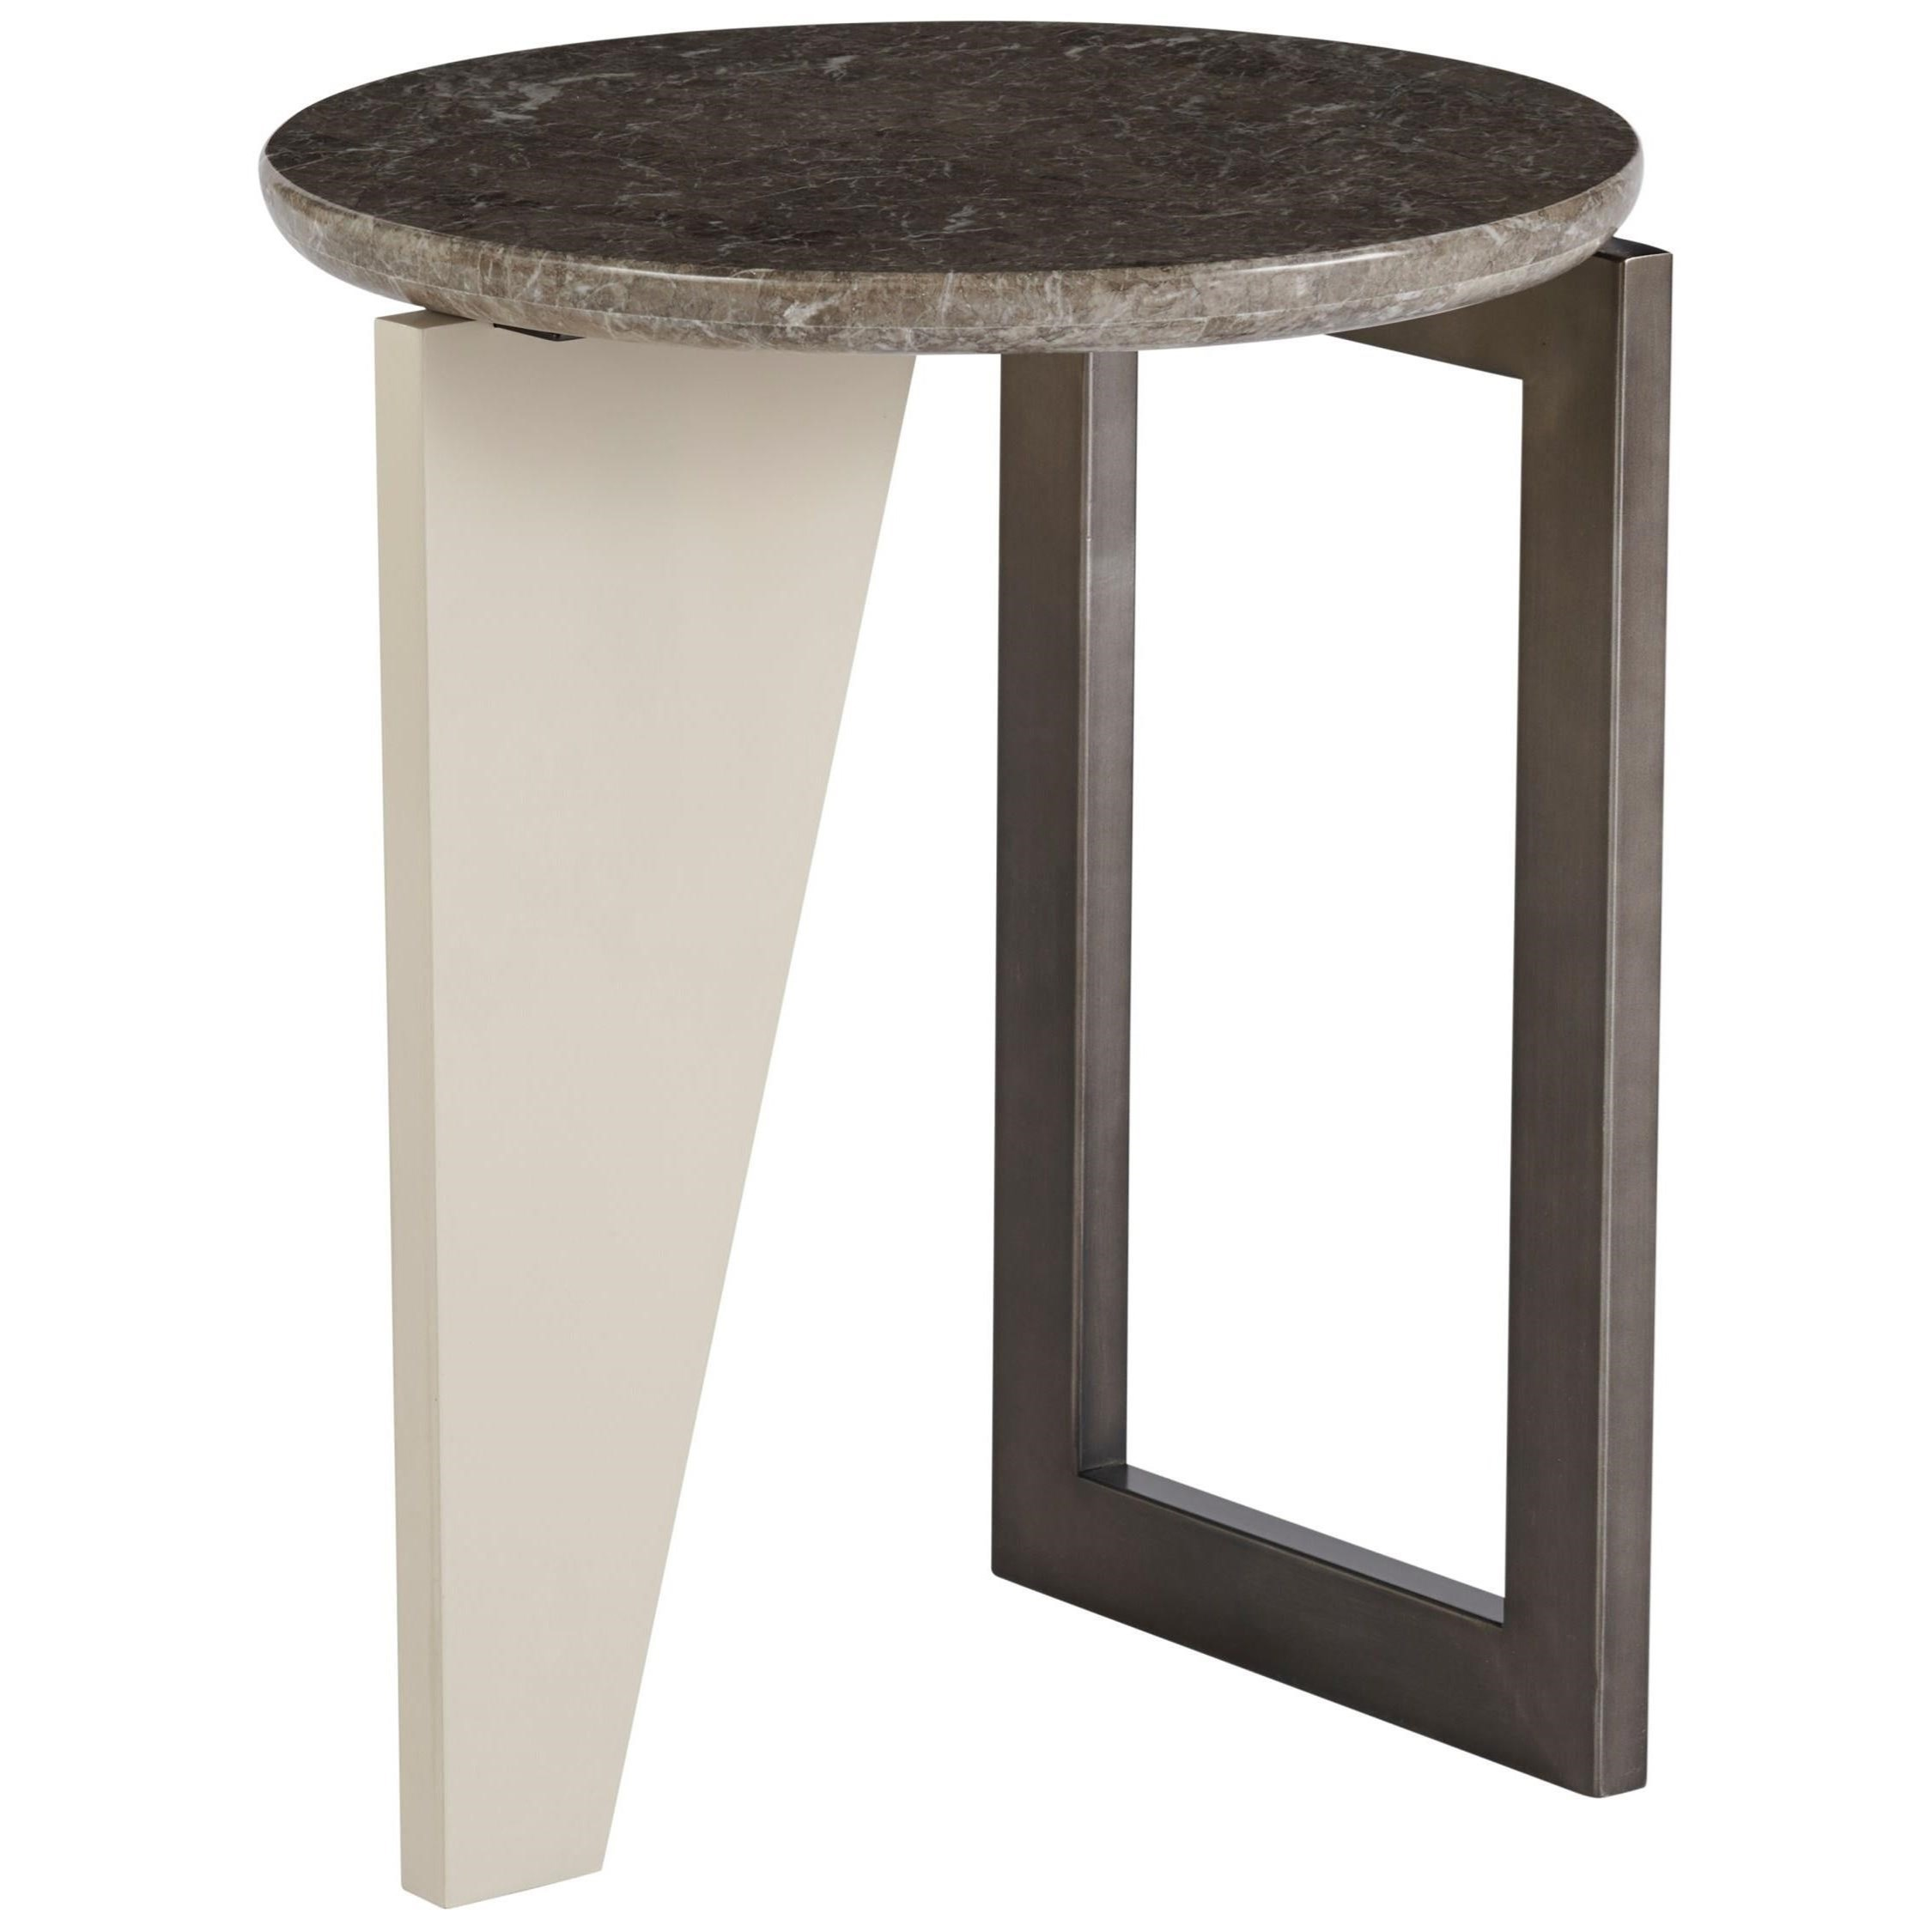 Nina Magon 941 Kline Round End Table by Universal at Baer's Furniture